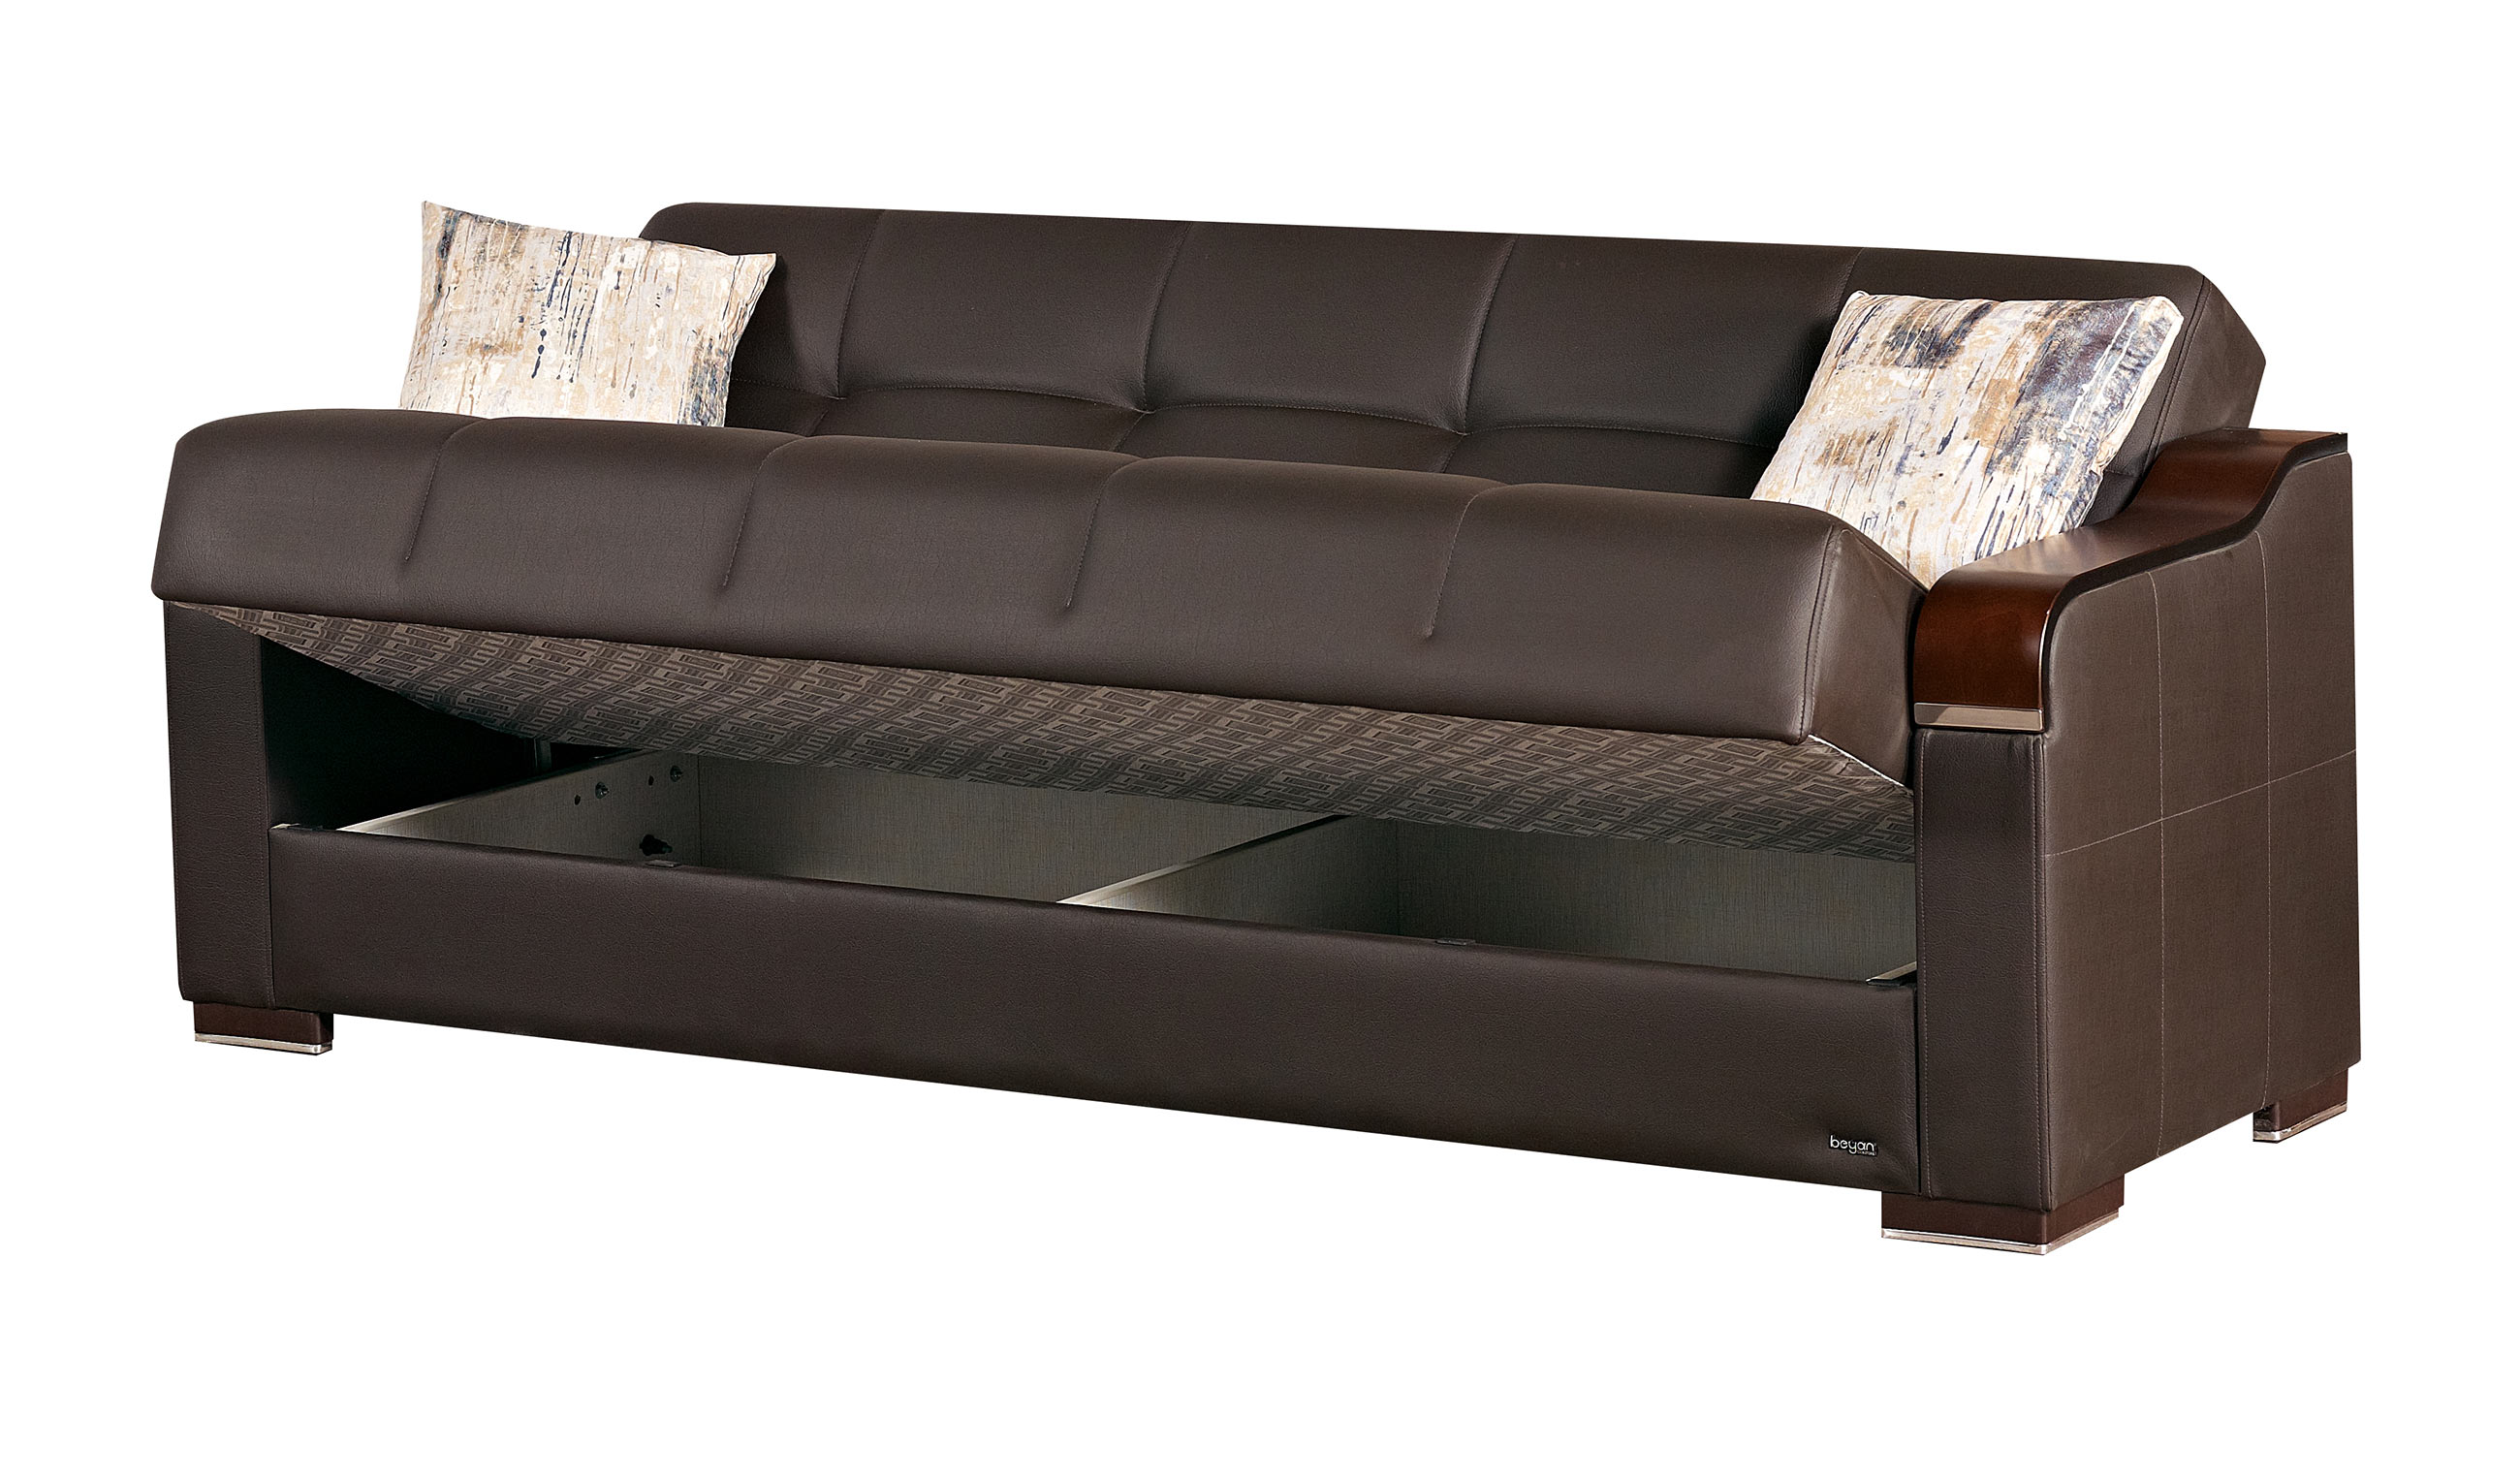 Paramus Dark Brown Fabric Sofa Bed By Empire Furniture Usa